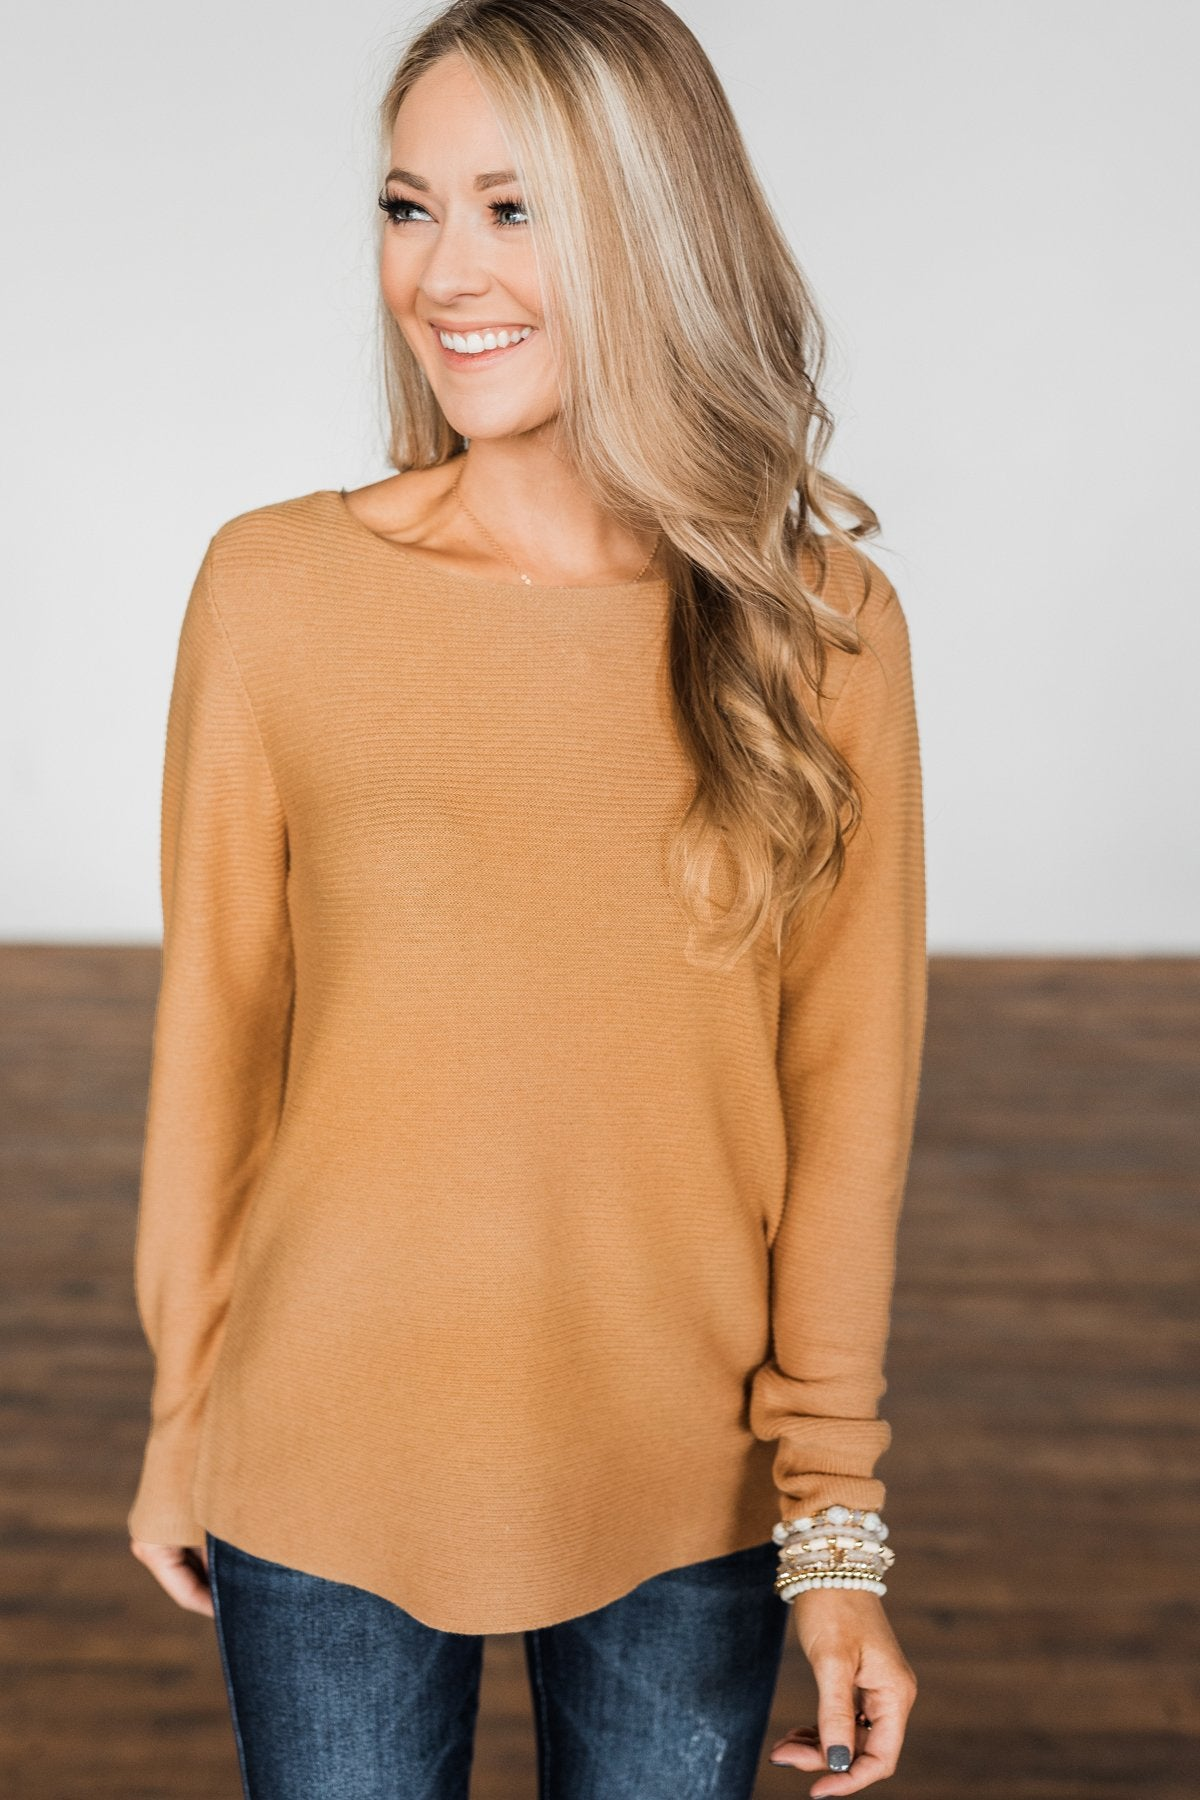 Up In The Clouds Knit Sweater- Light Camel